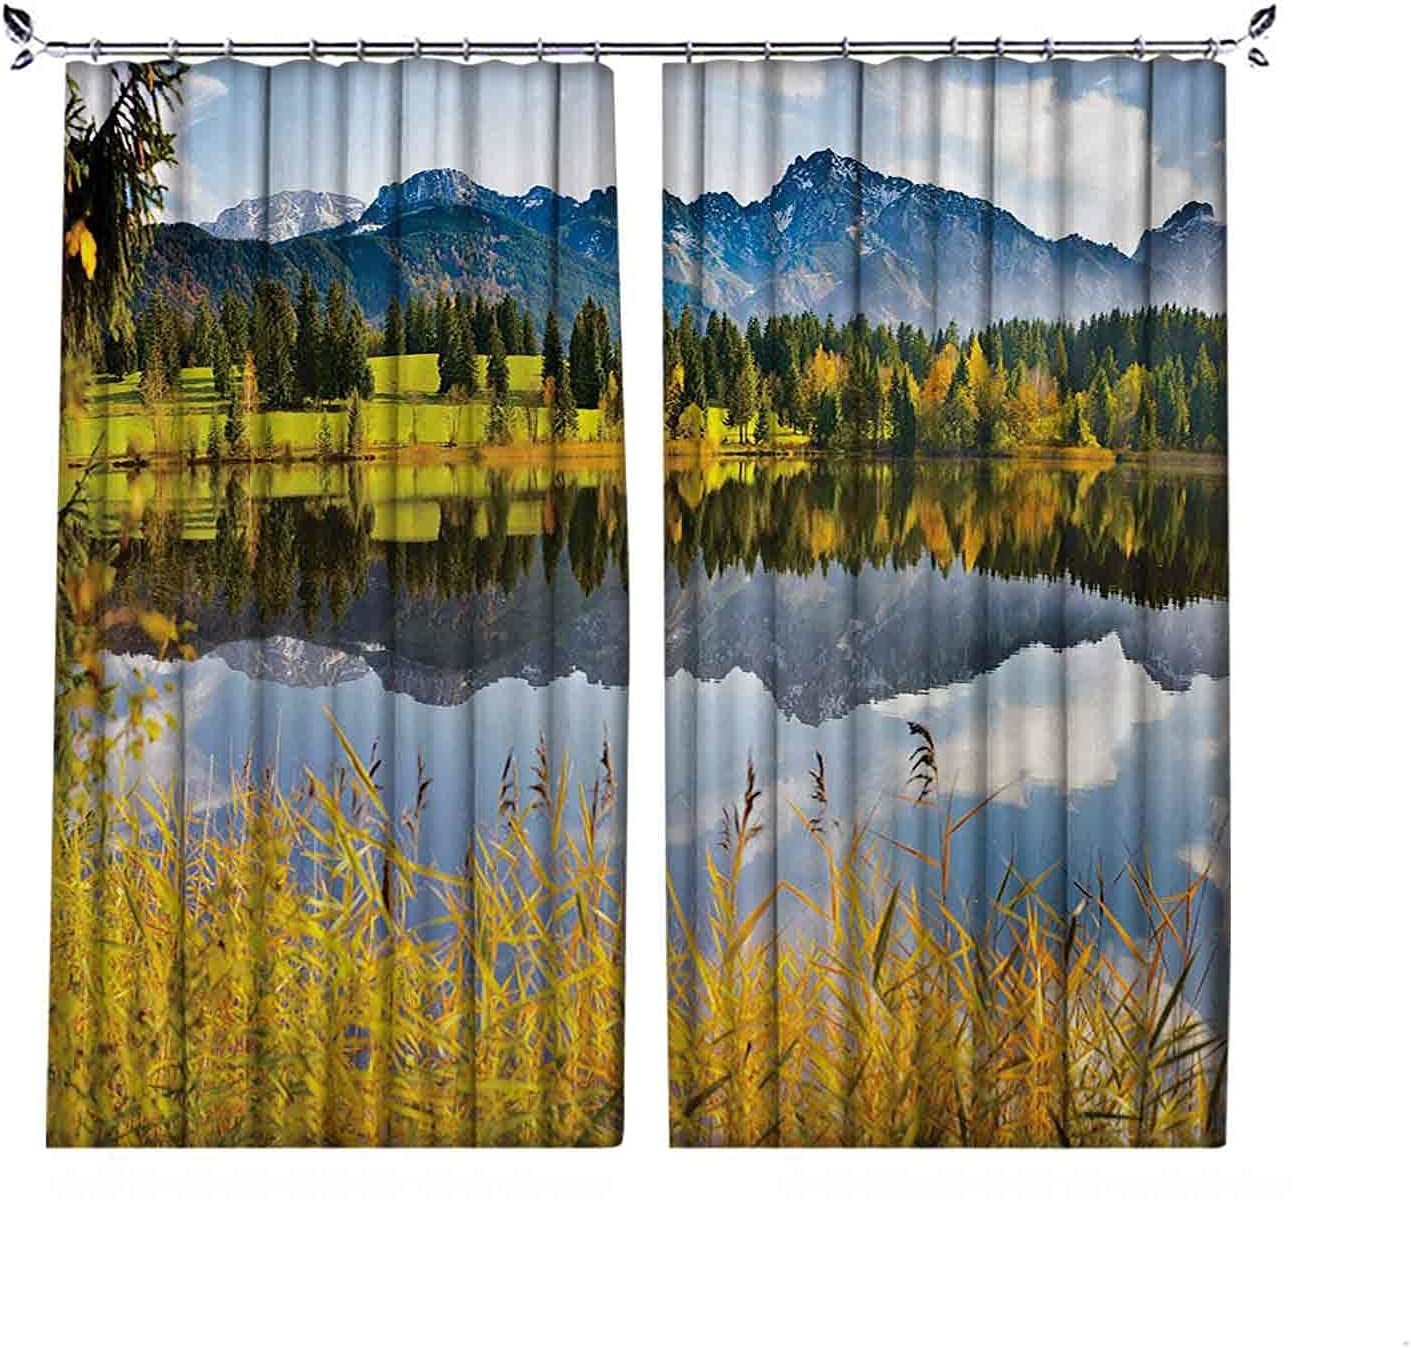 90% Inexpensive Blackout Nature Curtains Pastoral by Th Scenery Special sale item Countryside